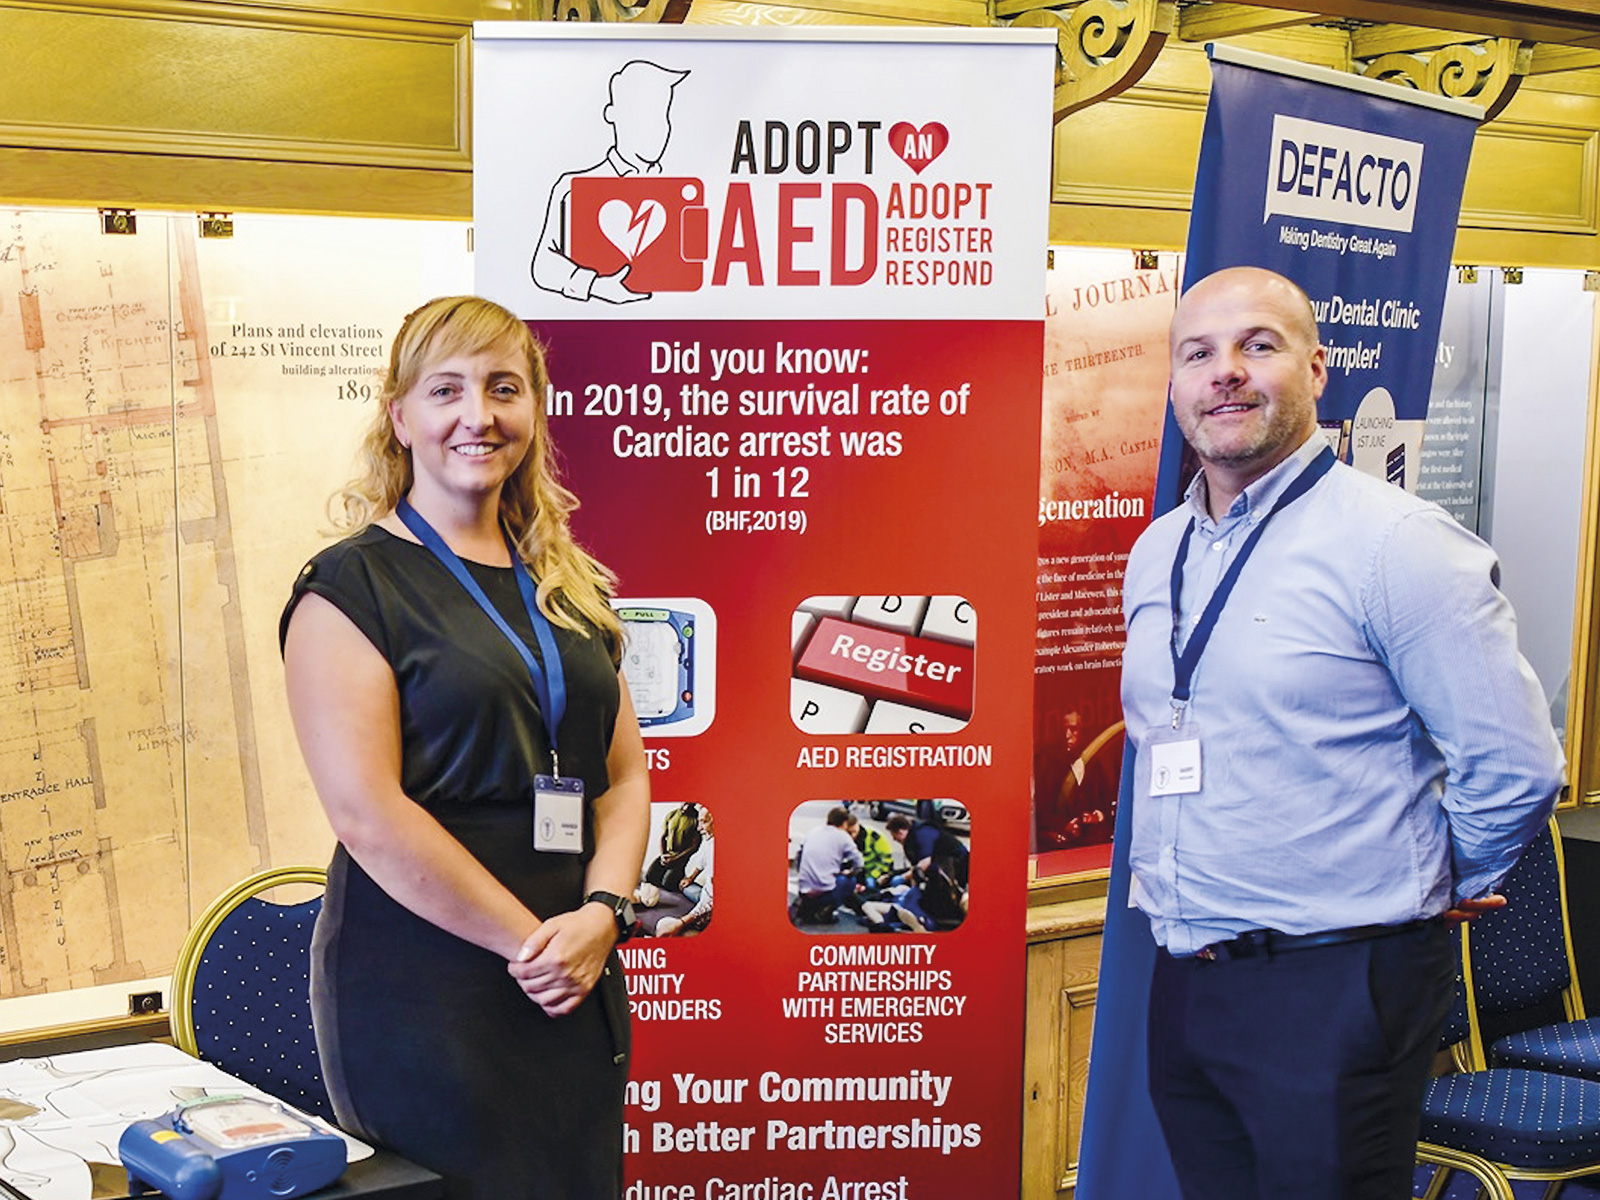 The adopt an AED team at a recent event